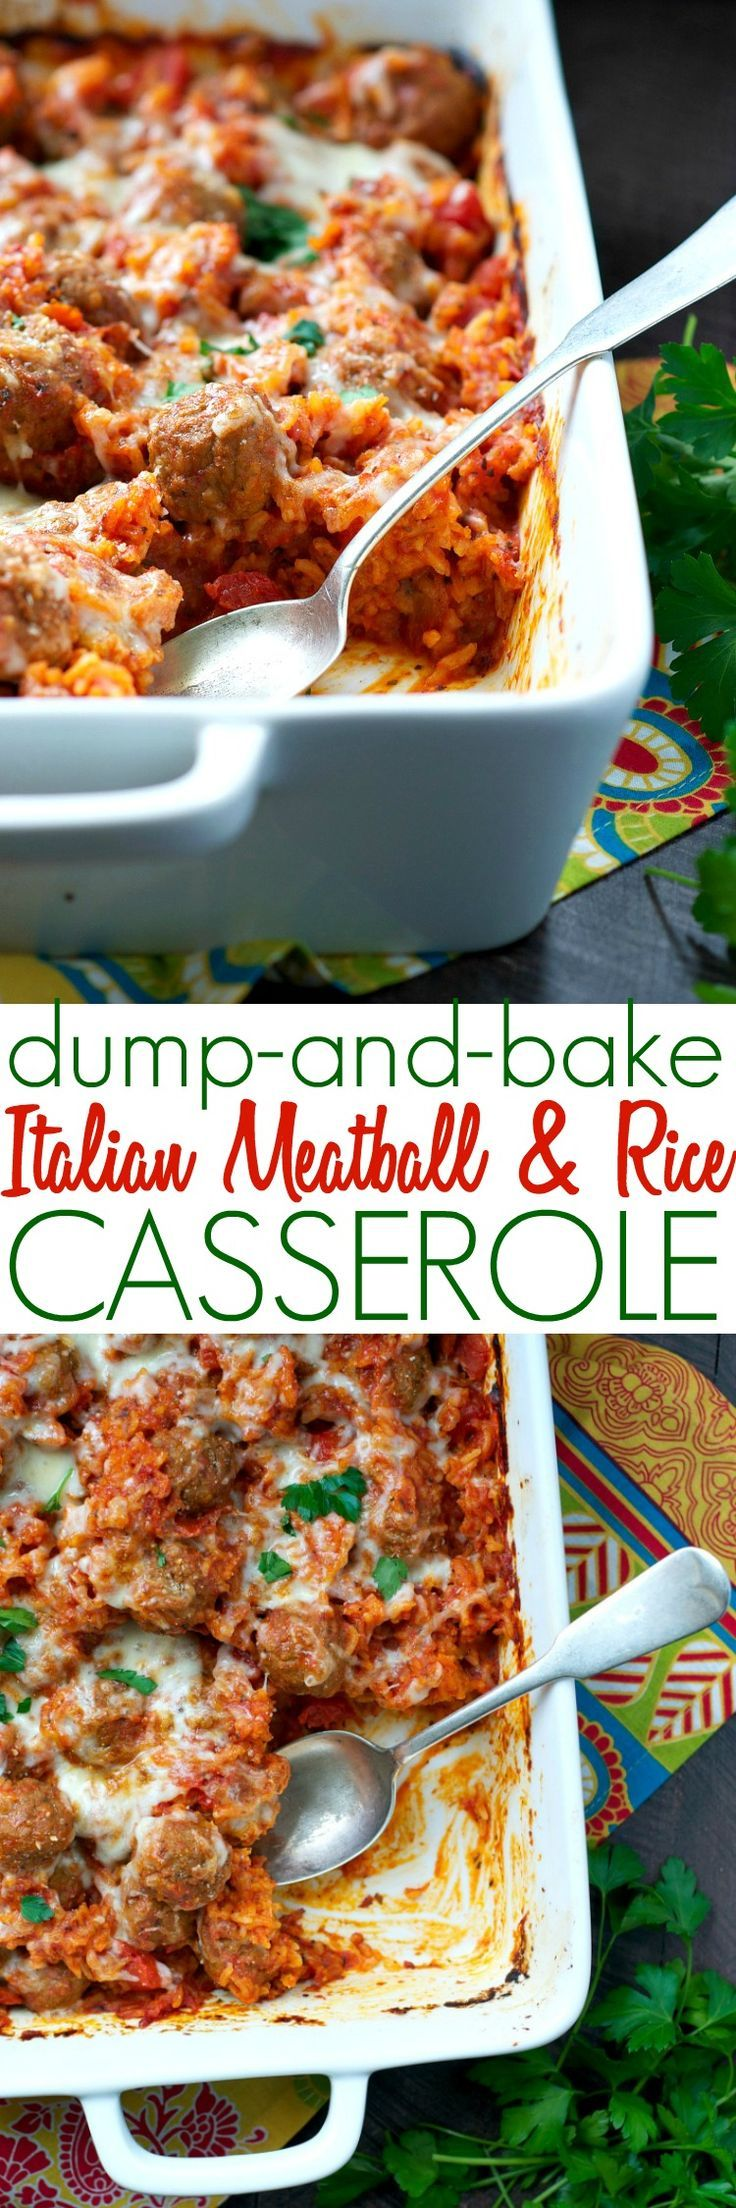 There's no prep necessary for this Dump and Bake Italian Meatball and Rice Casserole! It's the perfect easy dinner solution for your busy weeknights – and your family will love the cozy comfort food! #ad #Rosina #WhatsForDinner /rosinafoods/